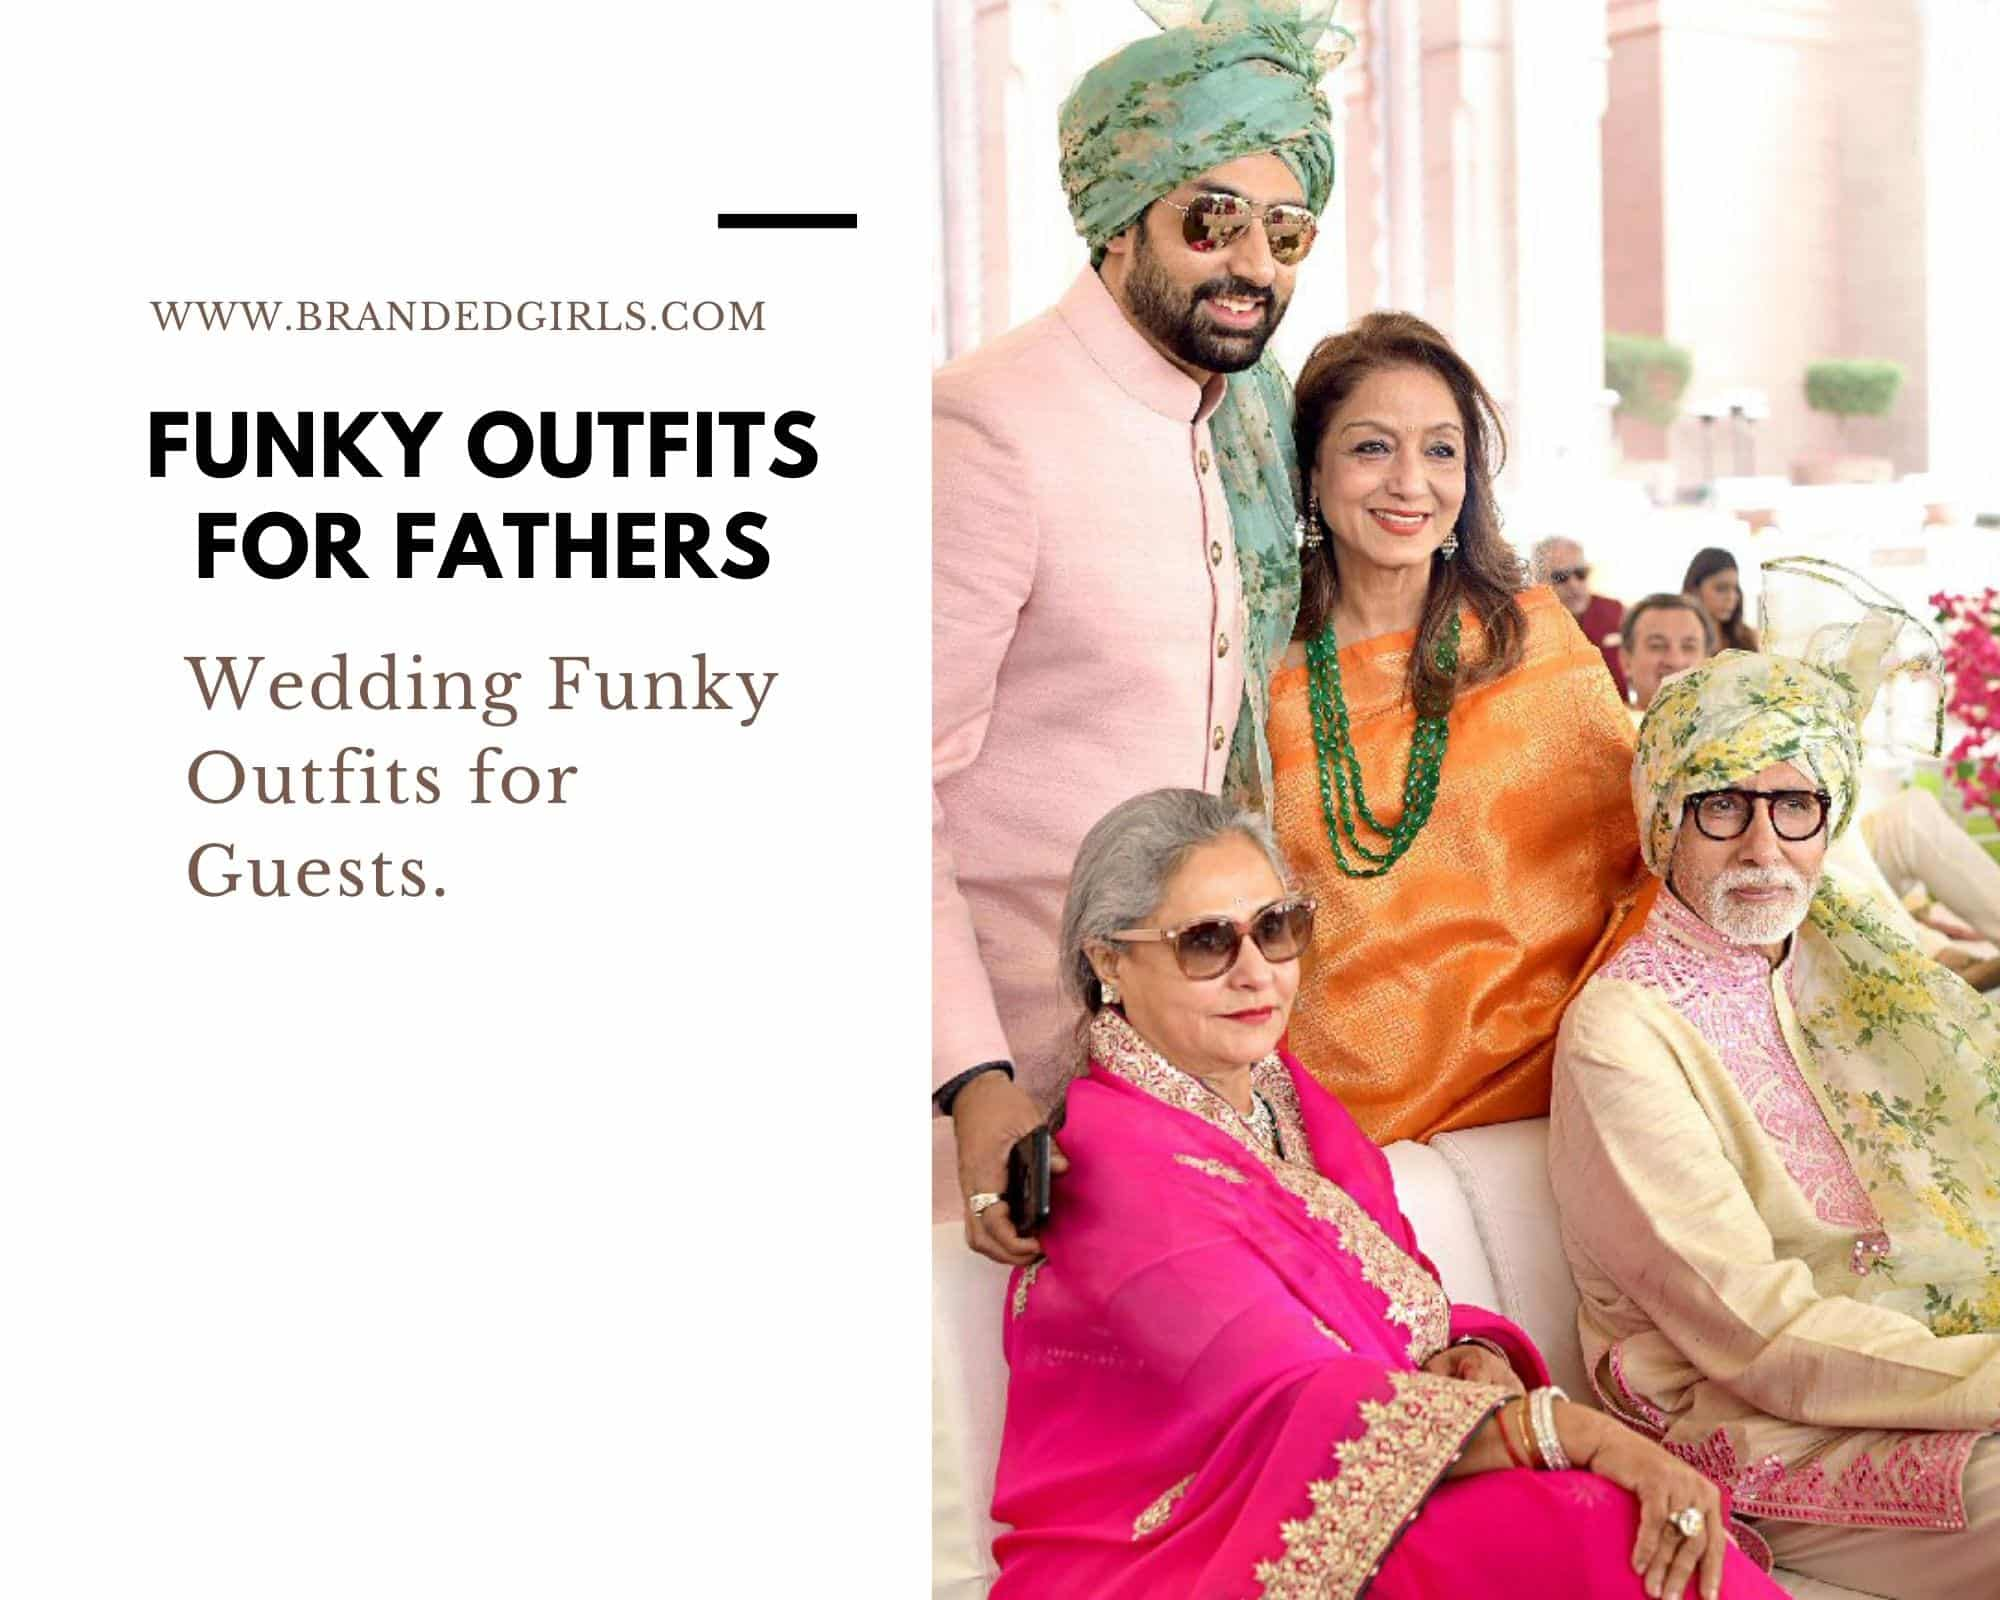 Wedding-Funky-Dress Funky Outfits for Wedding-30 Funky Styles for Wedding Guests